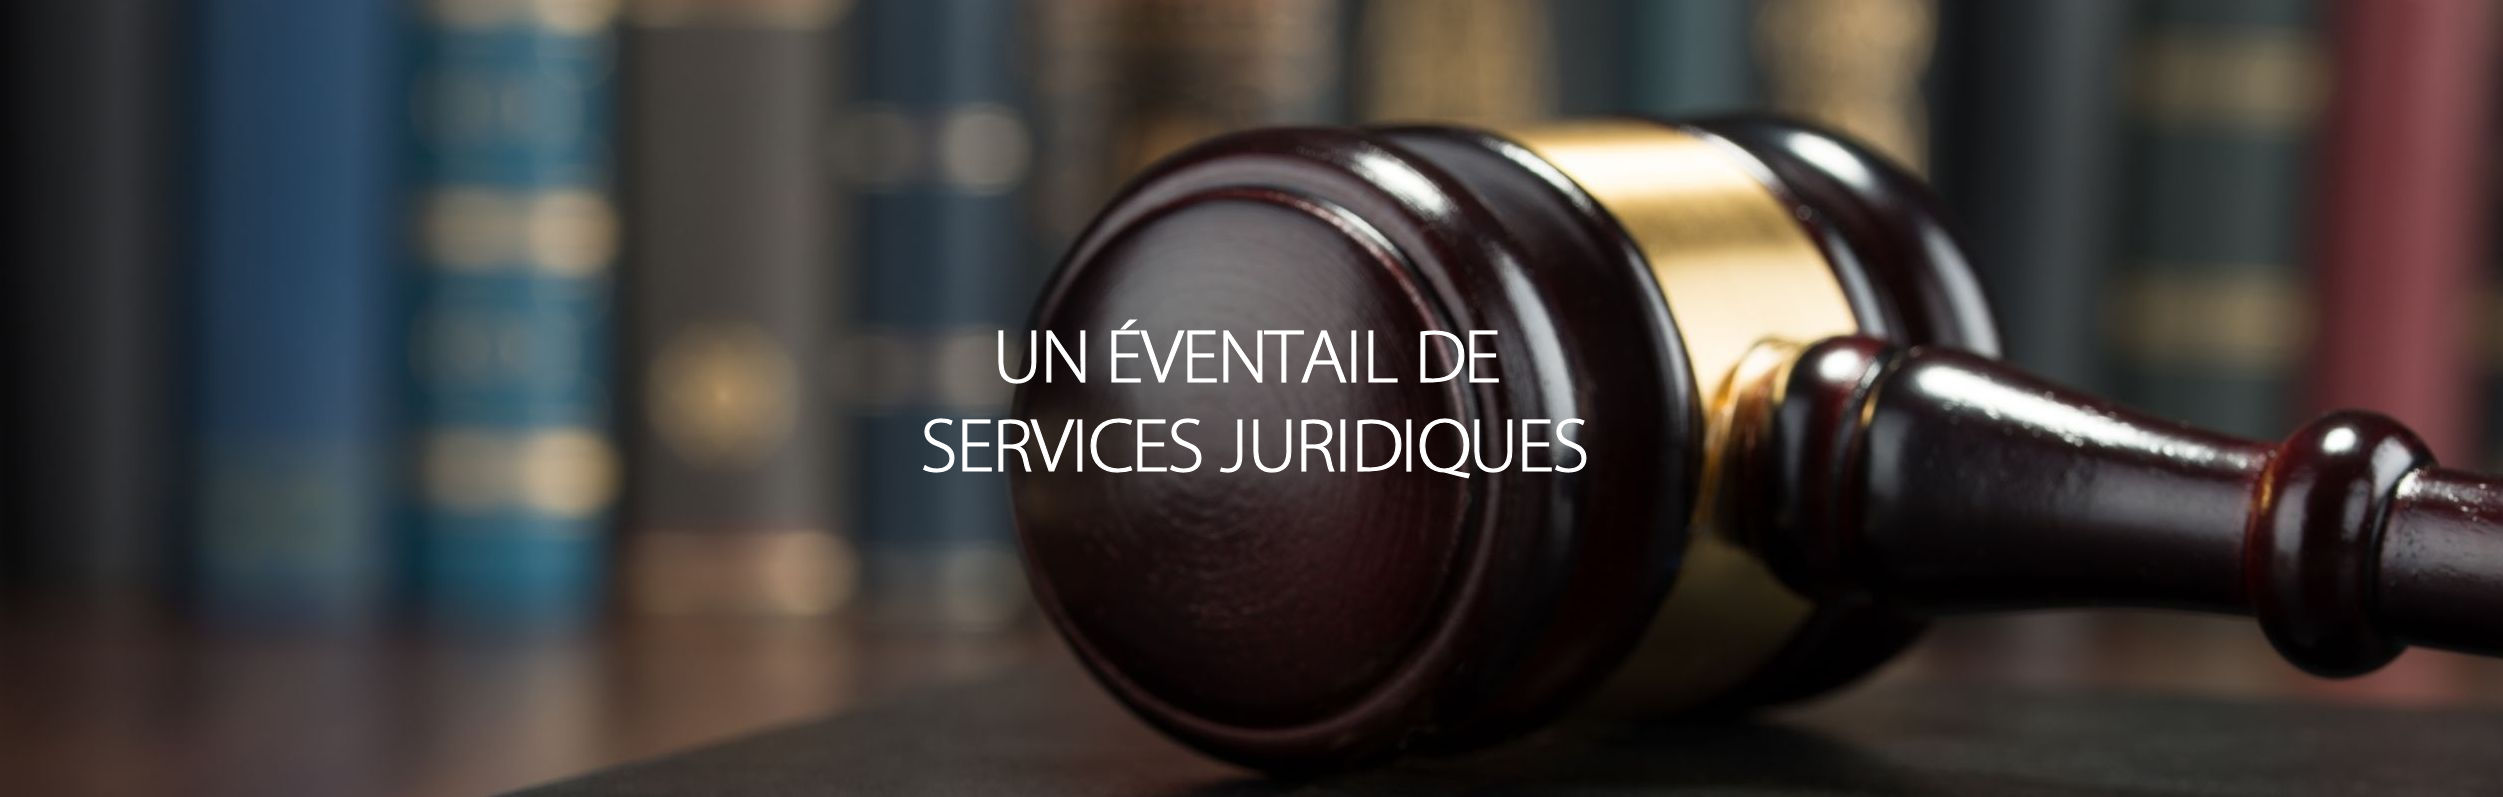 Excellente expertise en droit